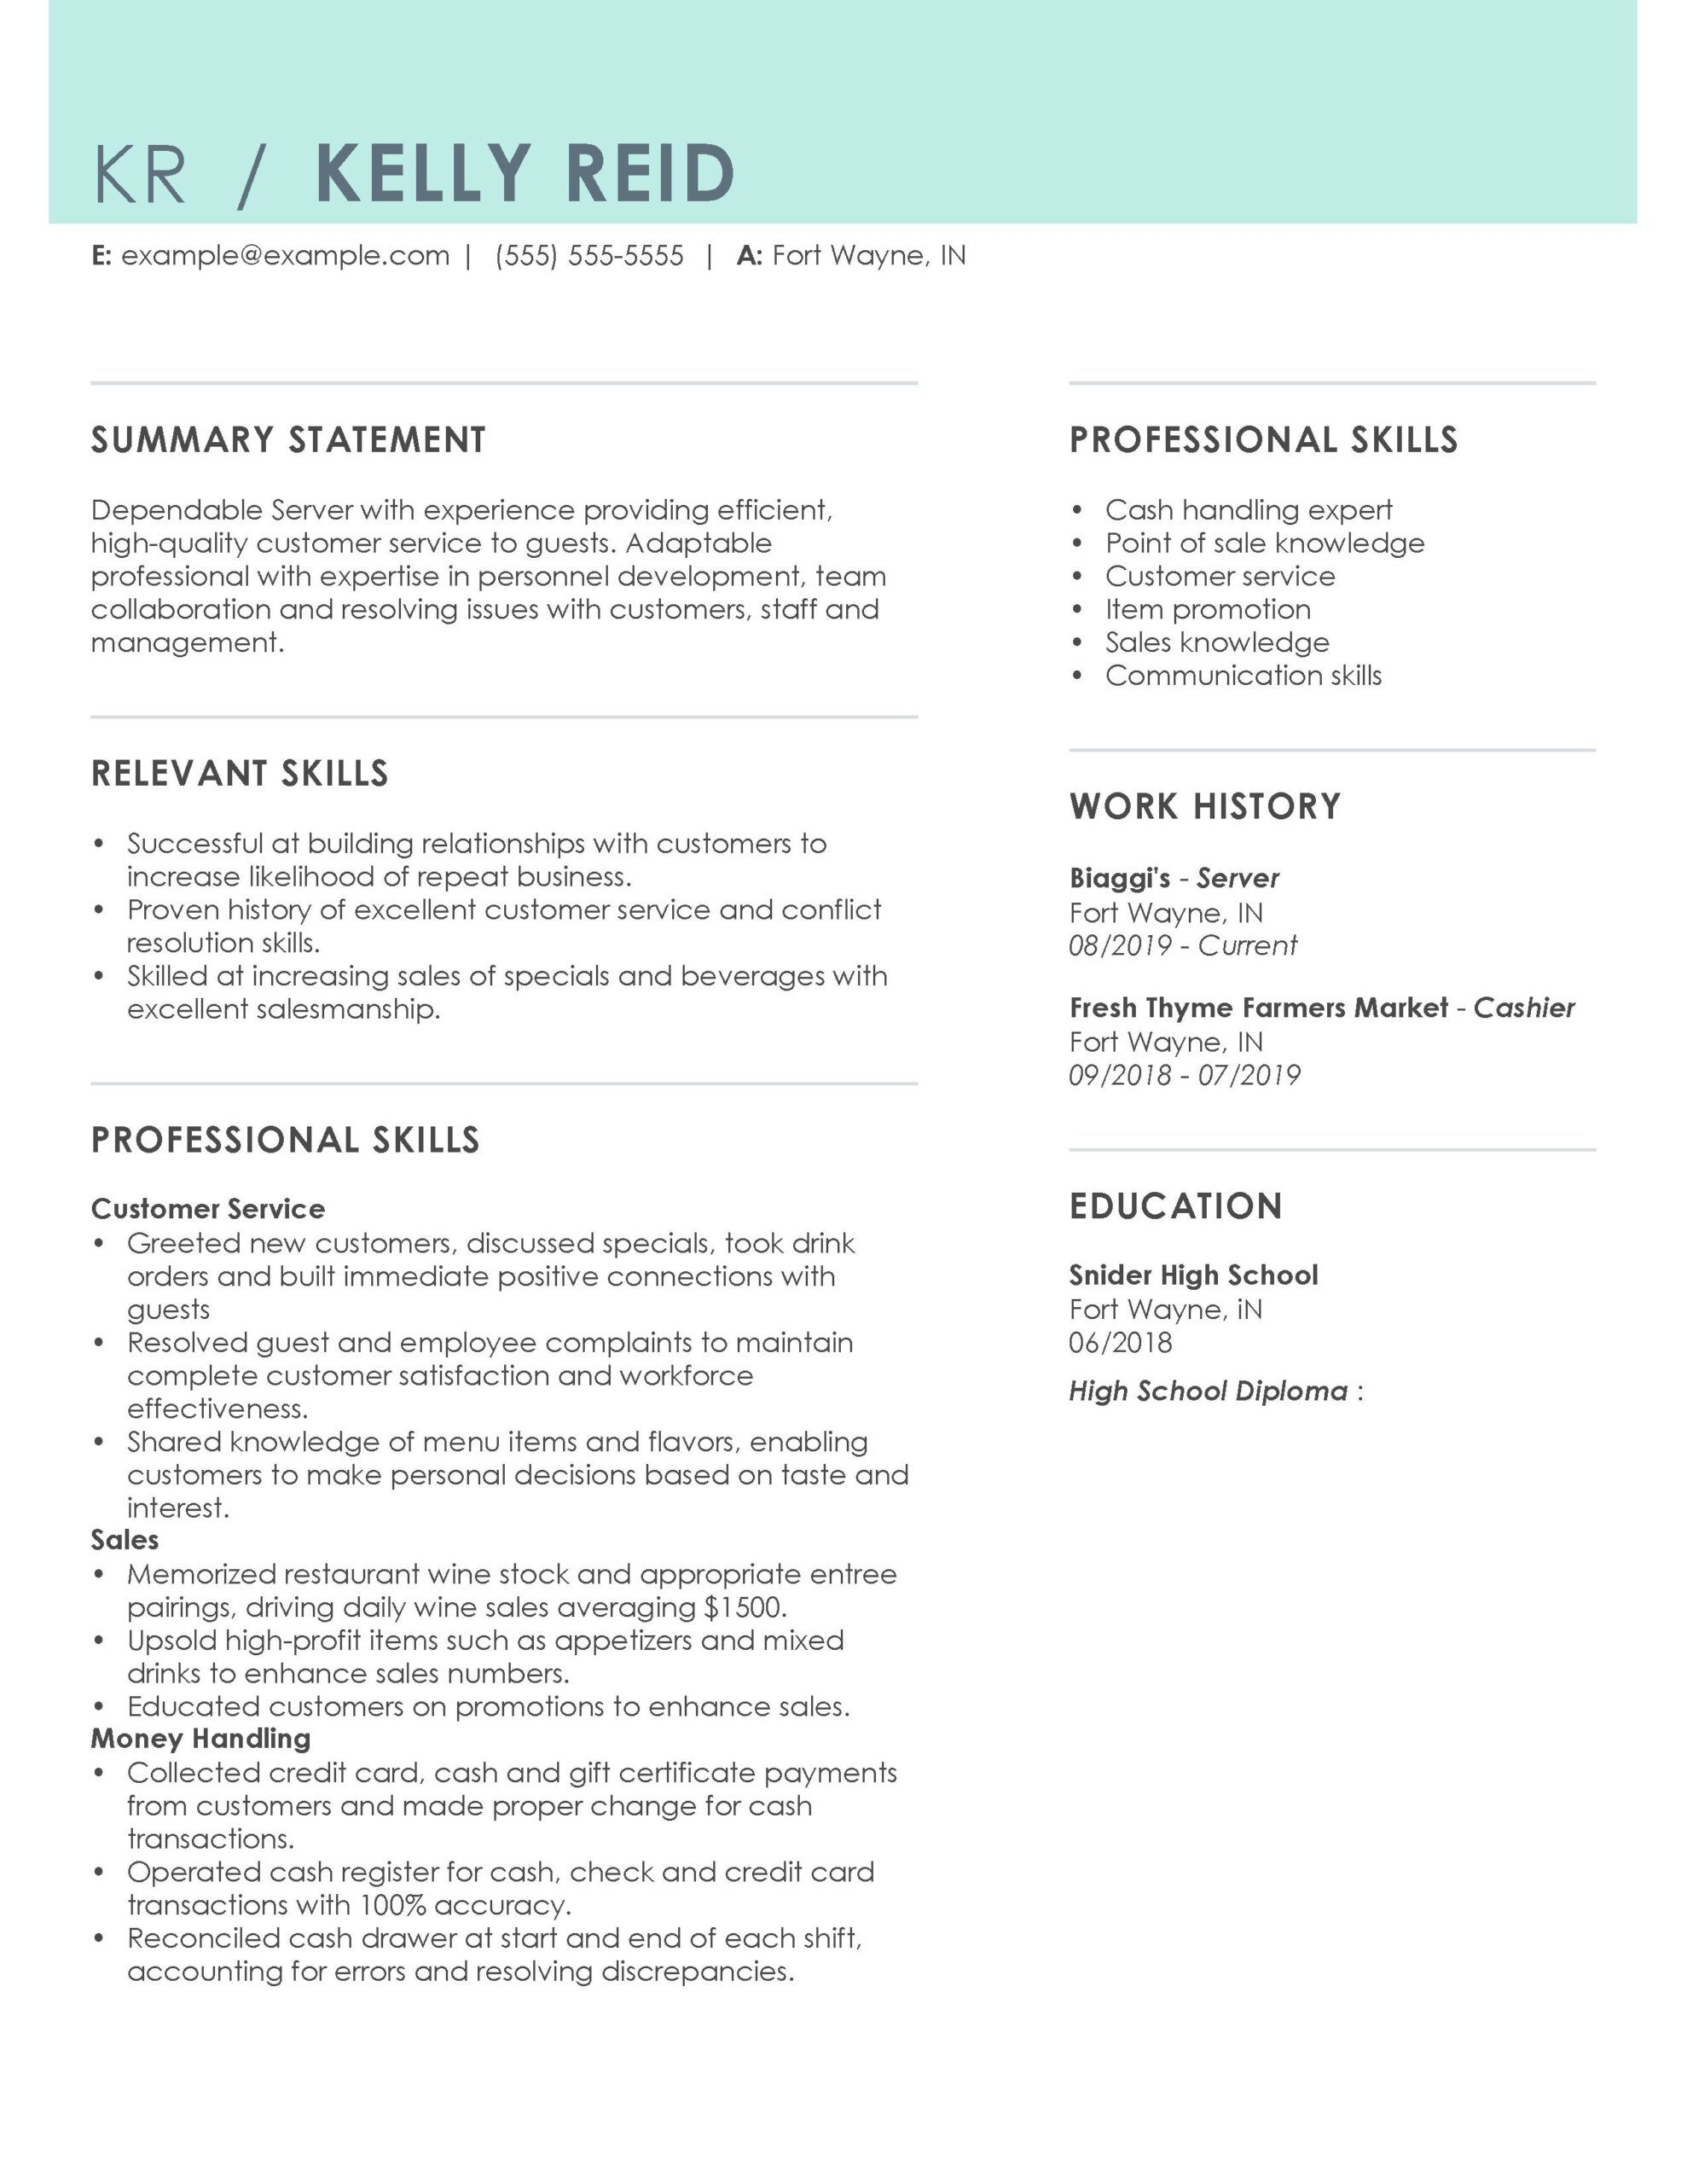 How to create sample resumes. Professional Sales Resume Examples   MyPerfectResume